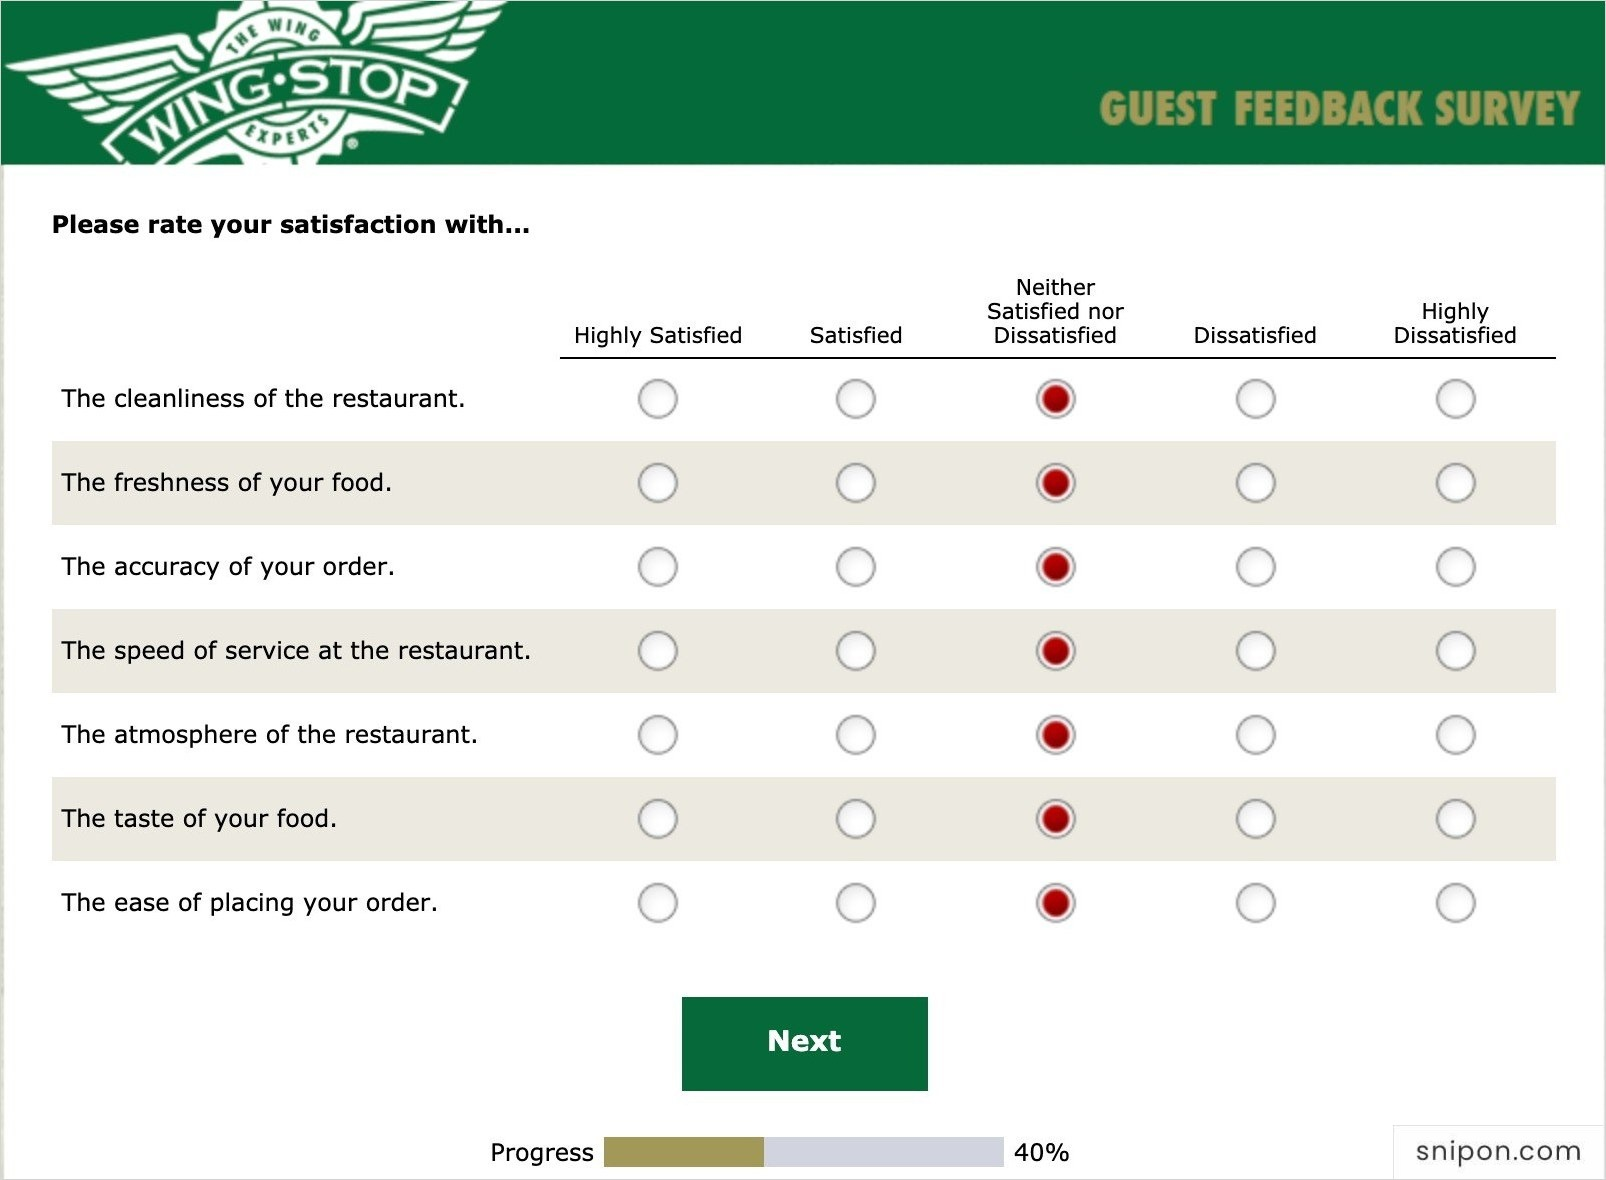 Rate Your Satisfaciton With Some Sectors - WingStop Survey